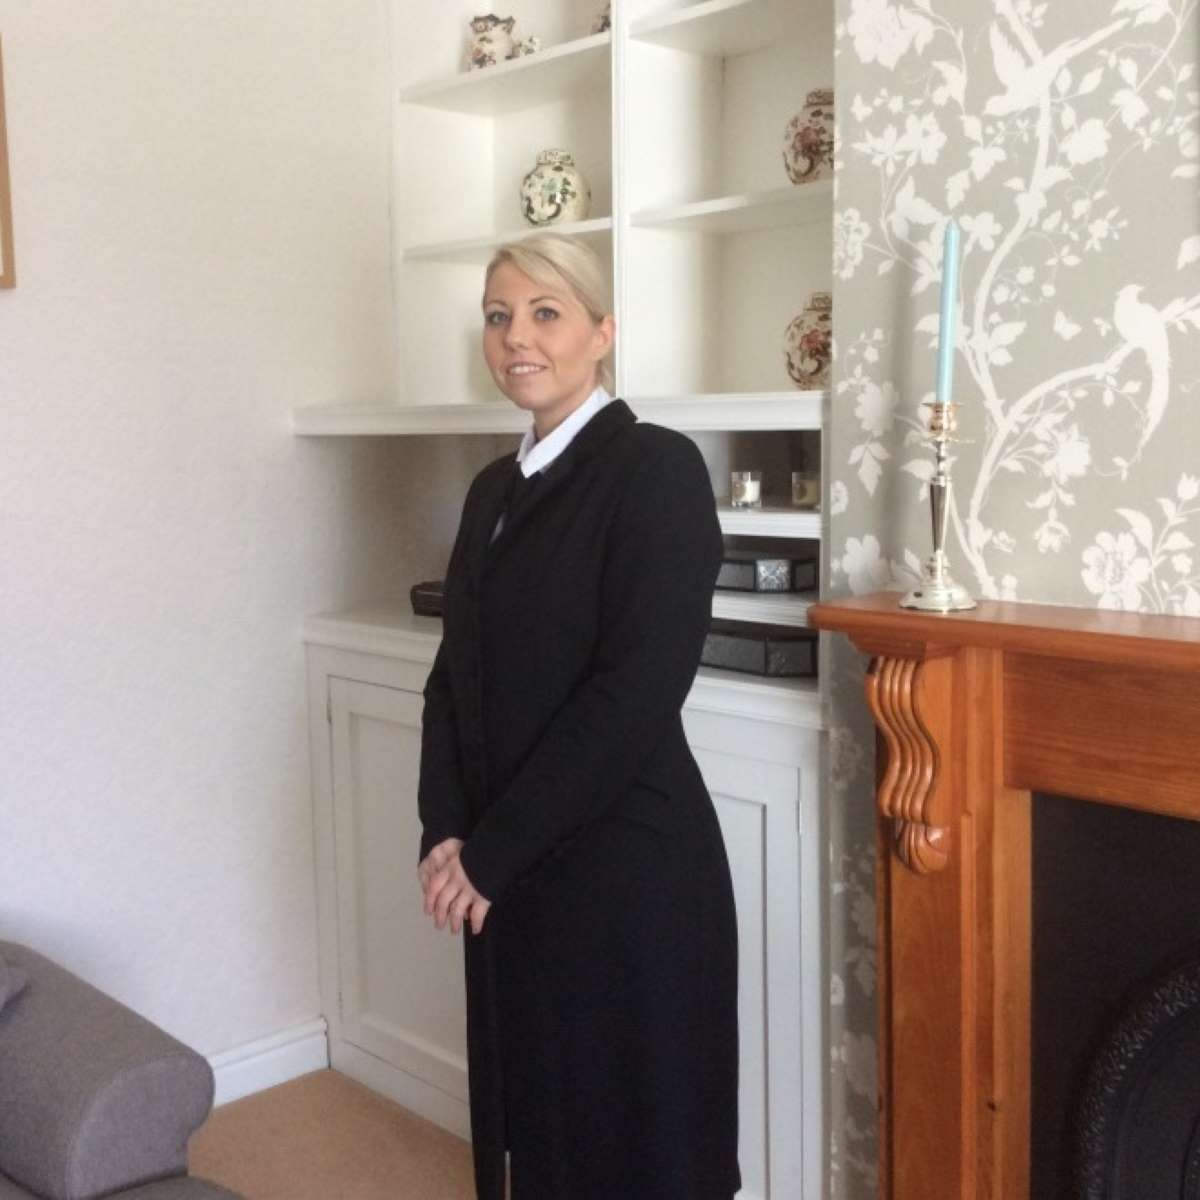 Nicholsons Funeral Directors in Longtown and Carlisle